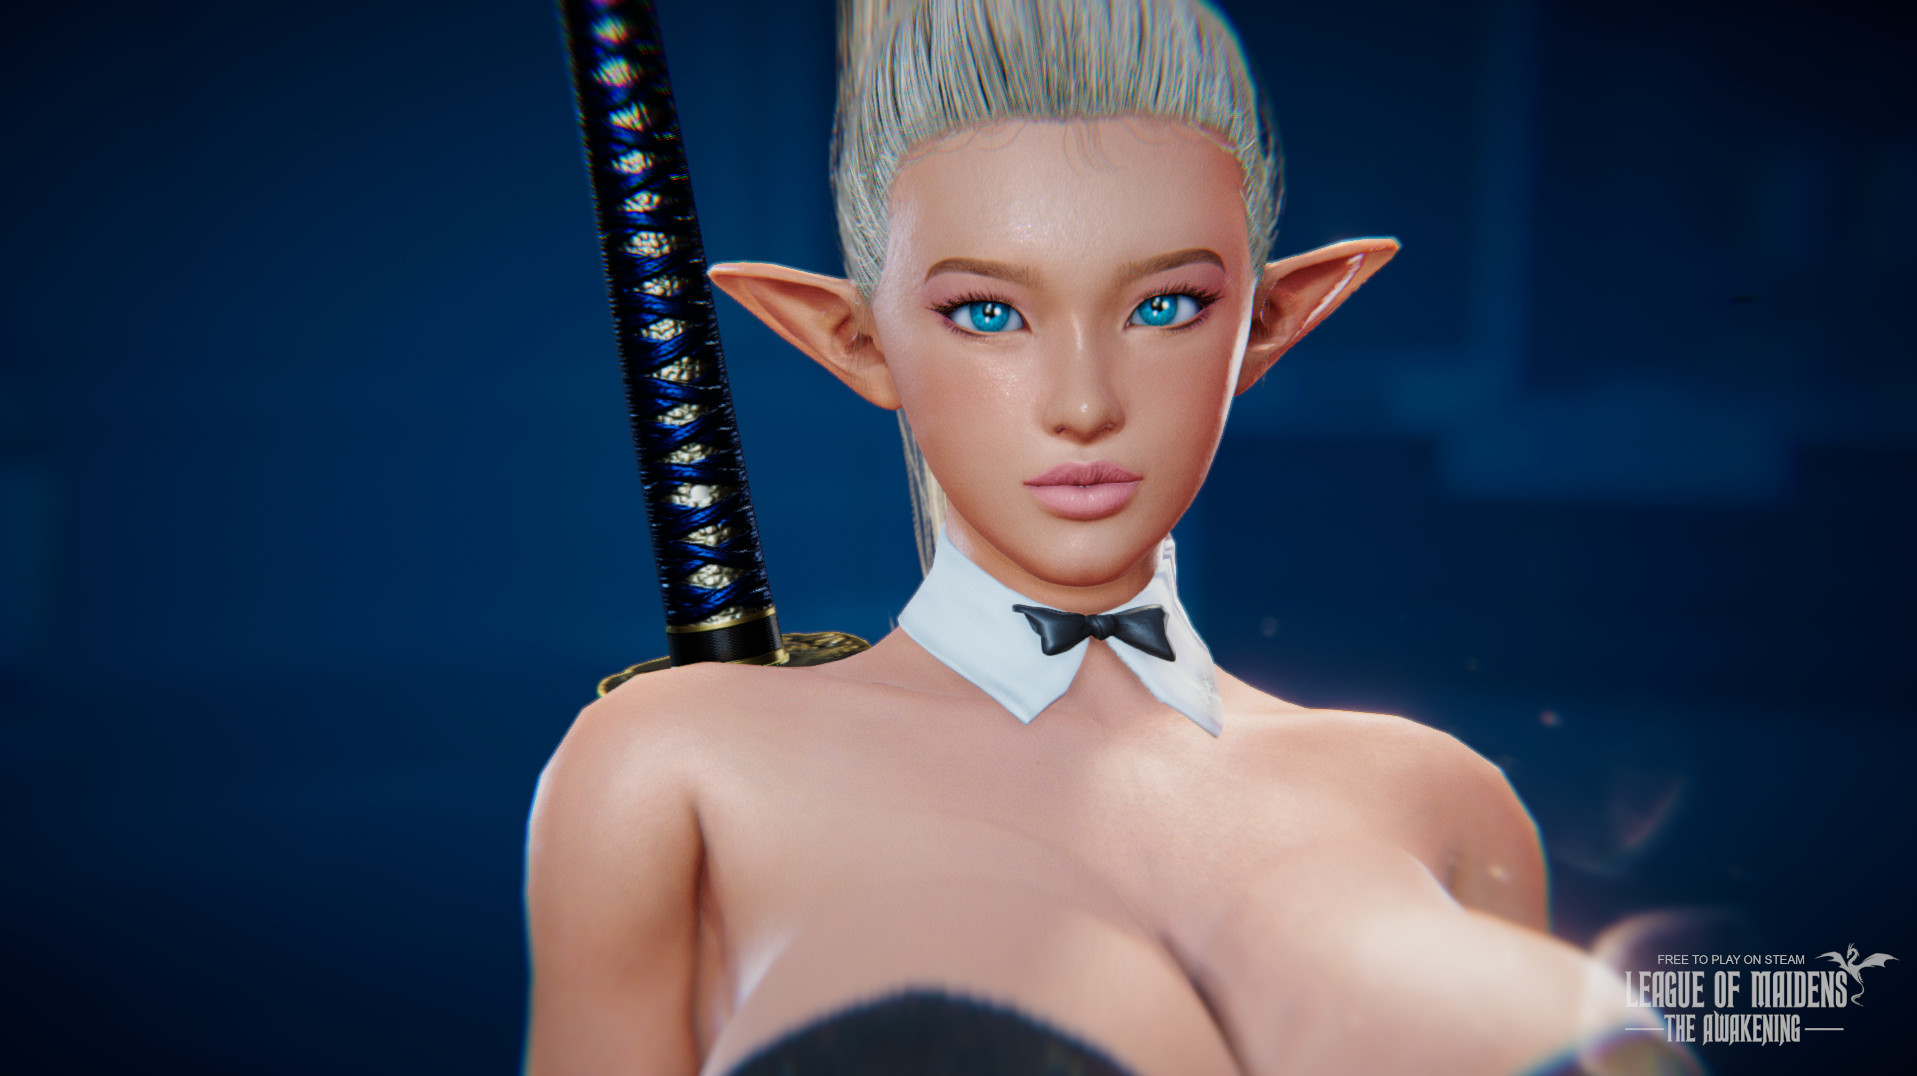 League of Maidens® on Steam